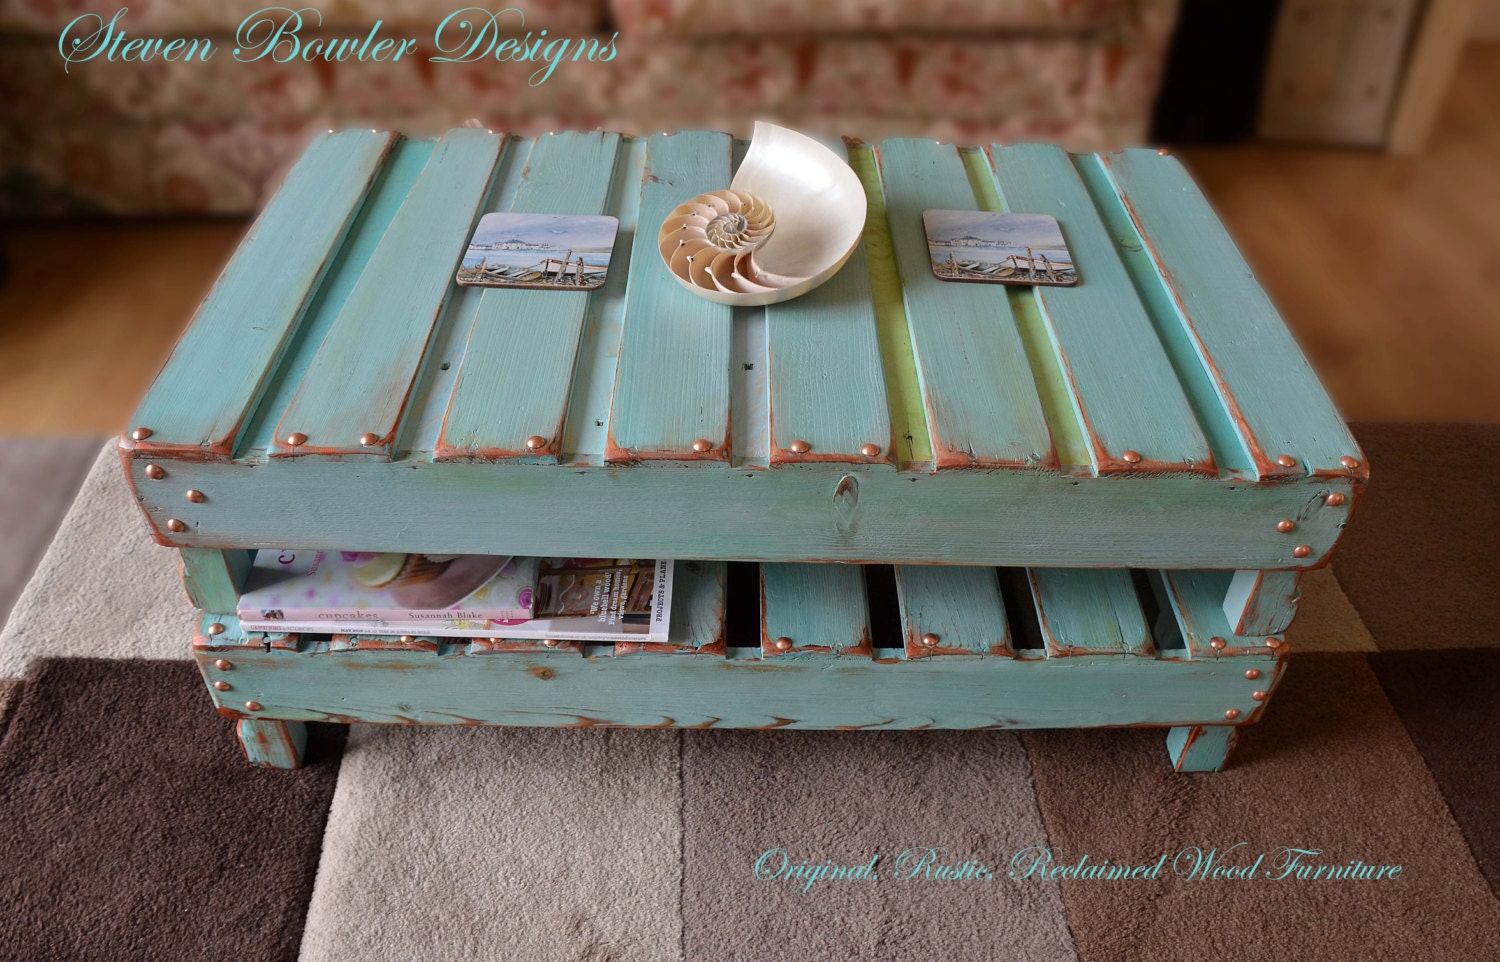 Rustic Reclaimed Wood Coffee Table in Duck Egg Blue with Decorative Copper Edging  Tacks with Handy Undershelf Storage Handcrafted to Order